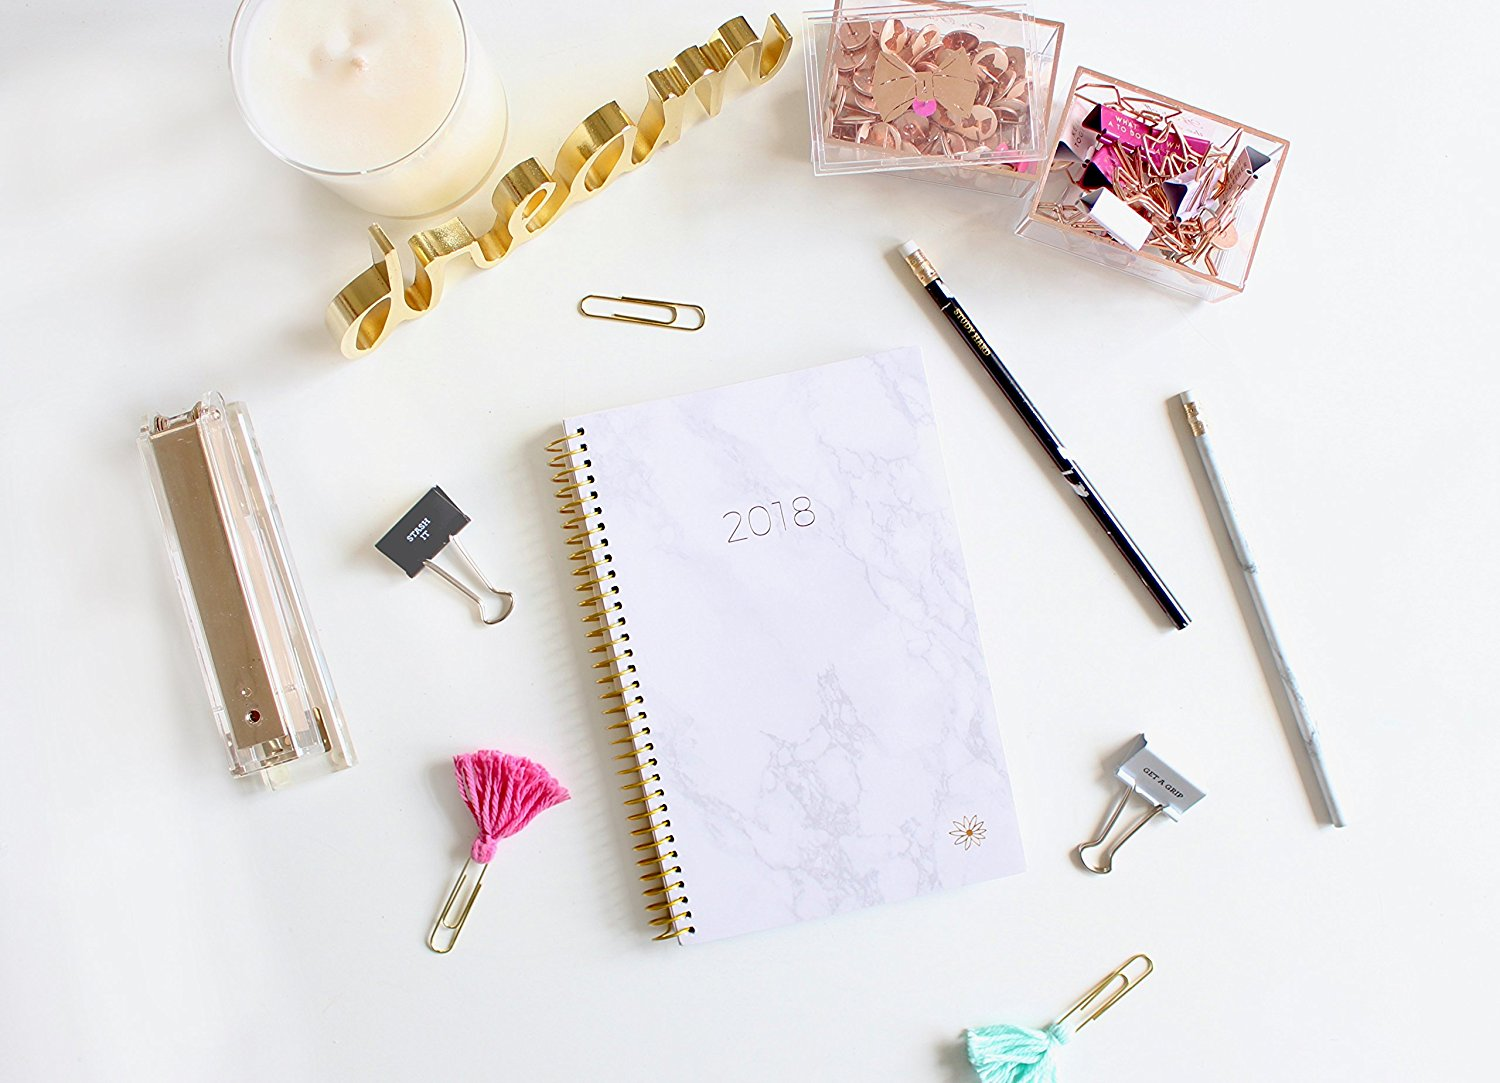 2018 planner best agendas organizer chic professional craft